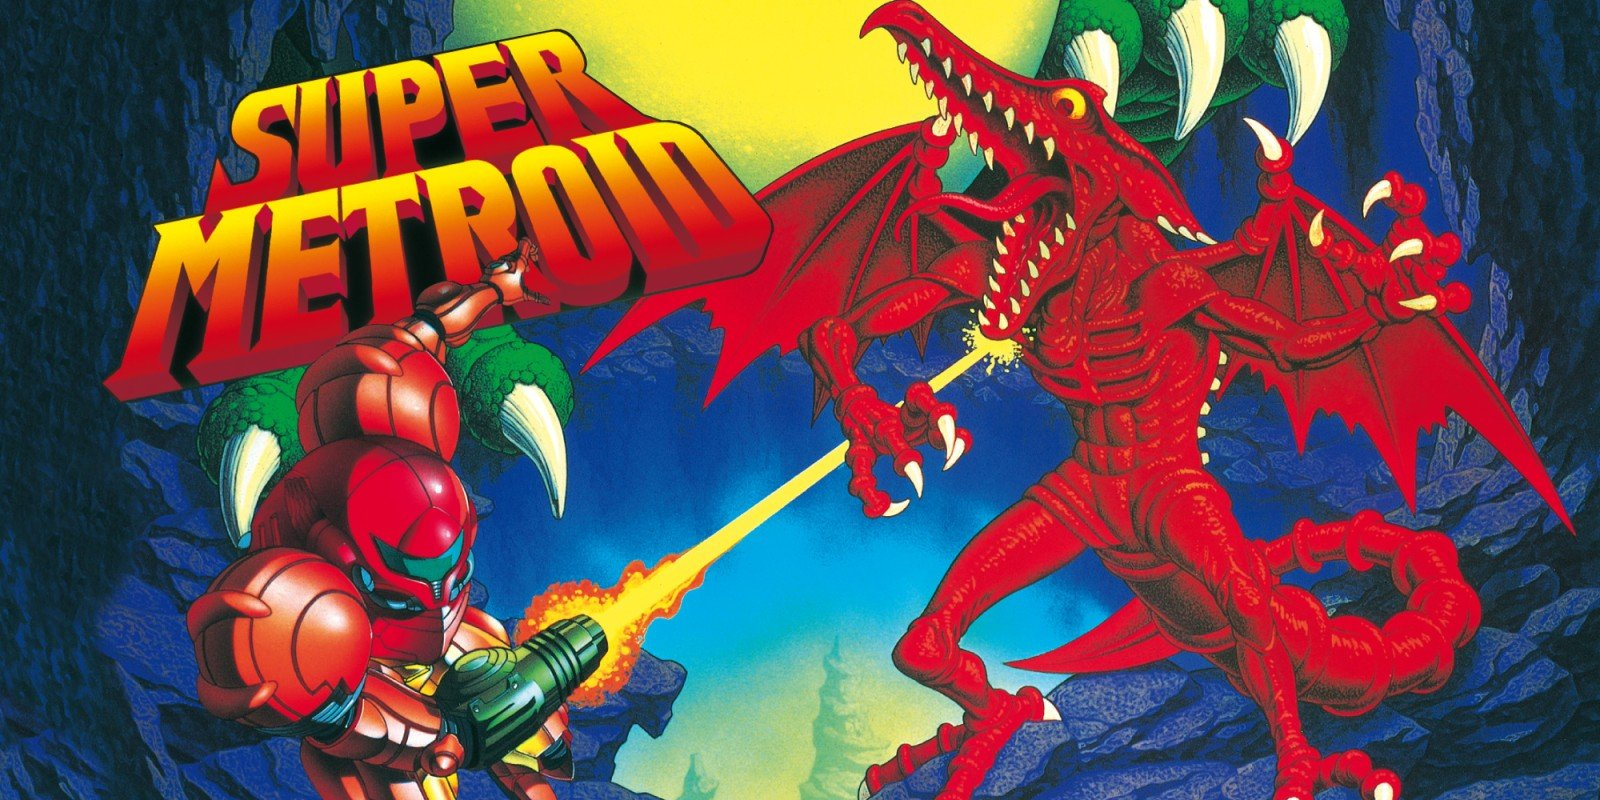 Super Metroid is one of the greatest games of all-time and it definitely used Mode 7 in innovative ways.